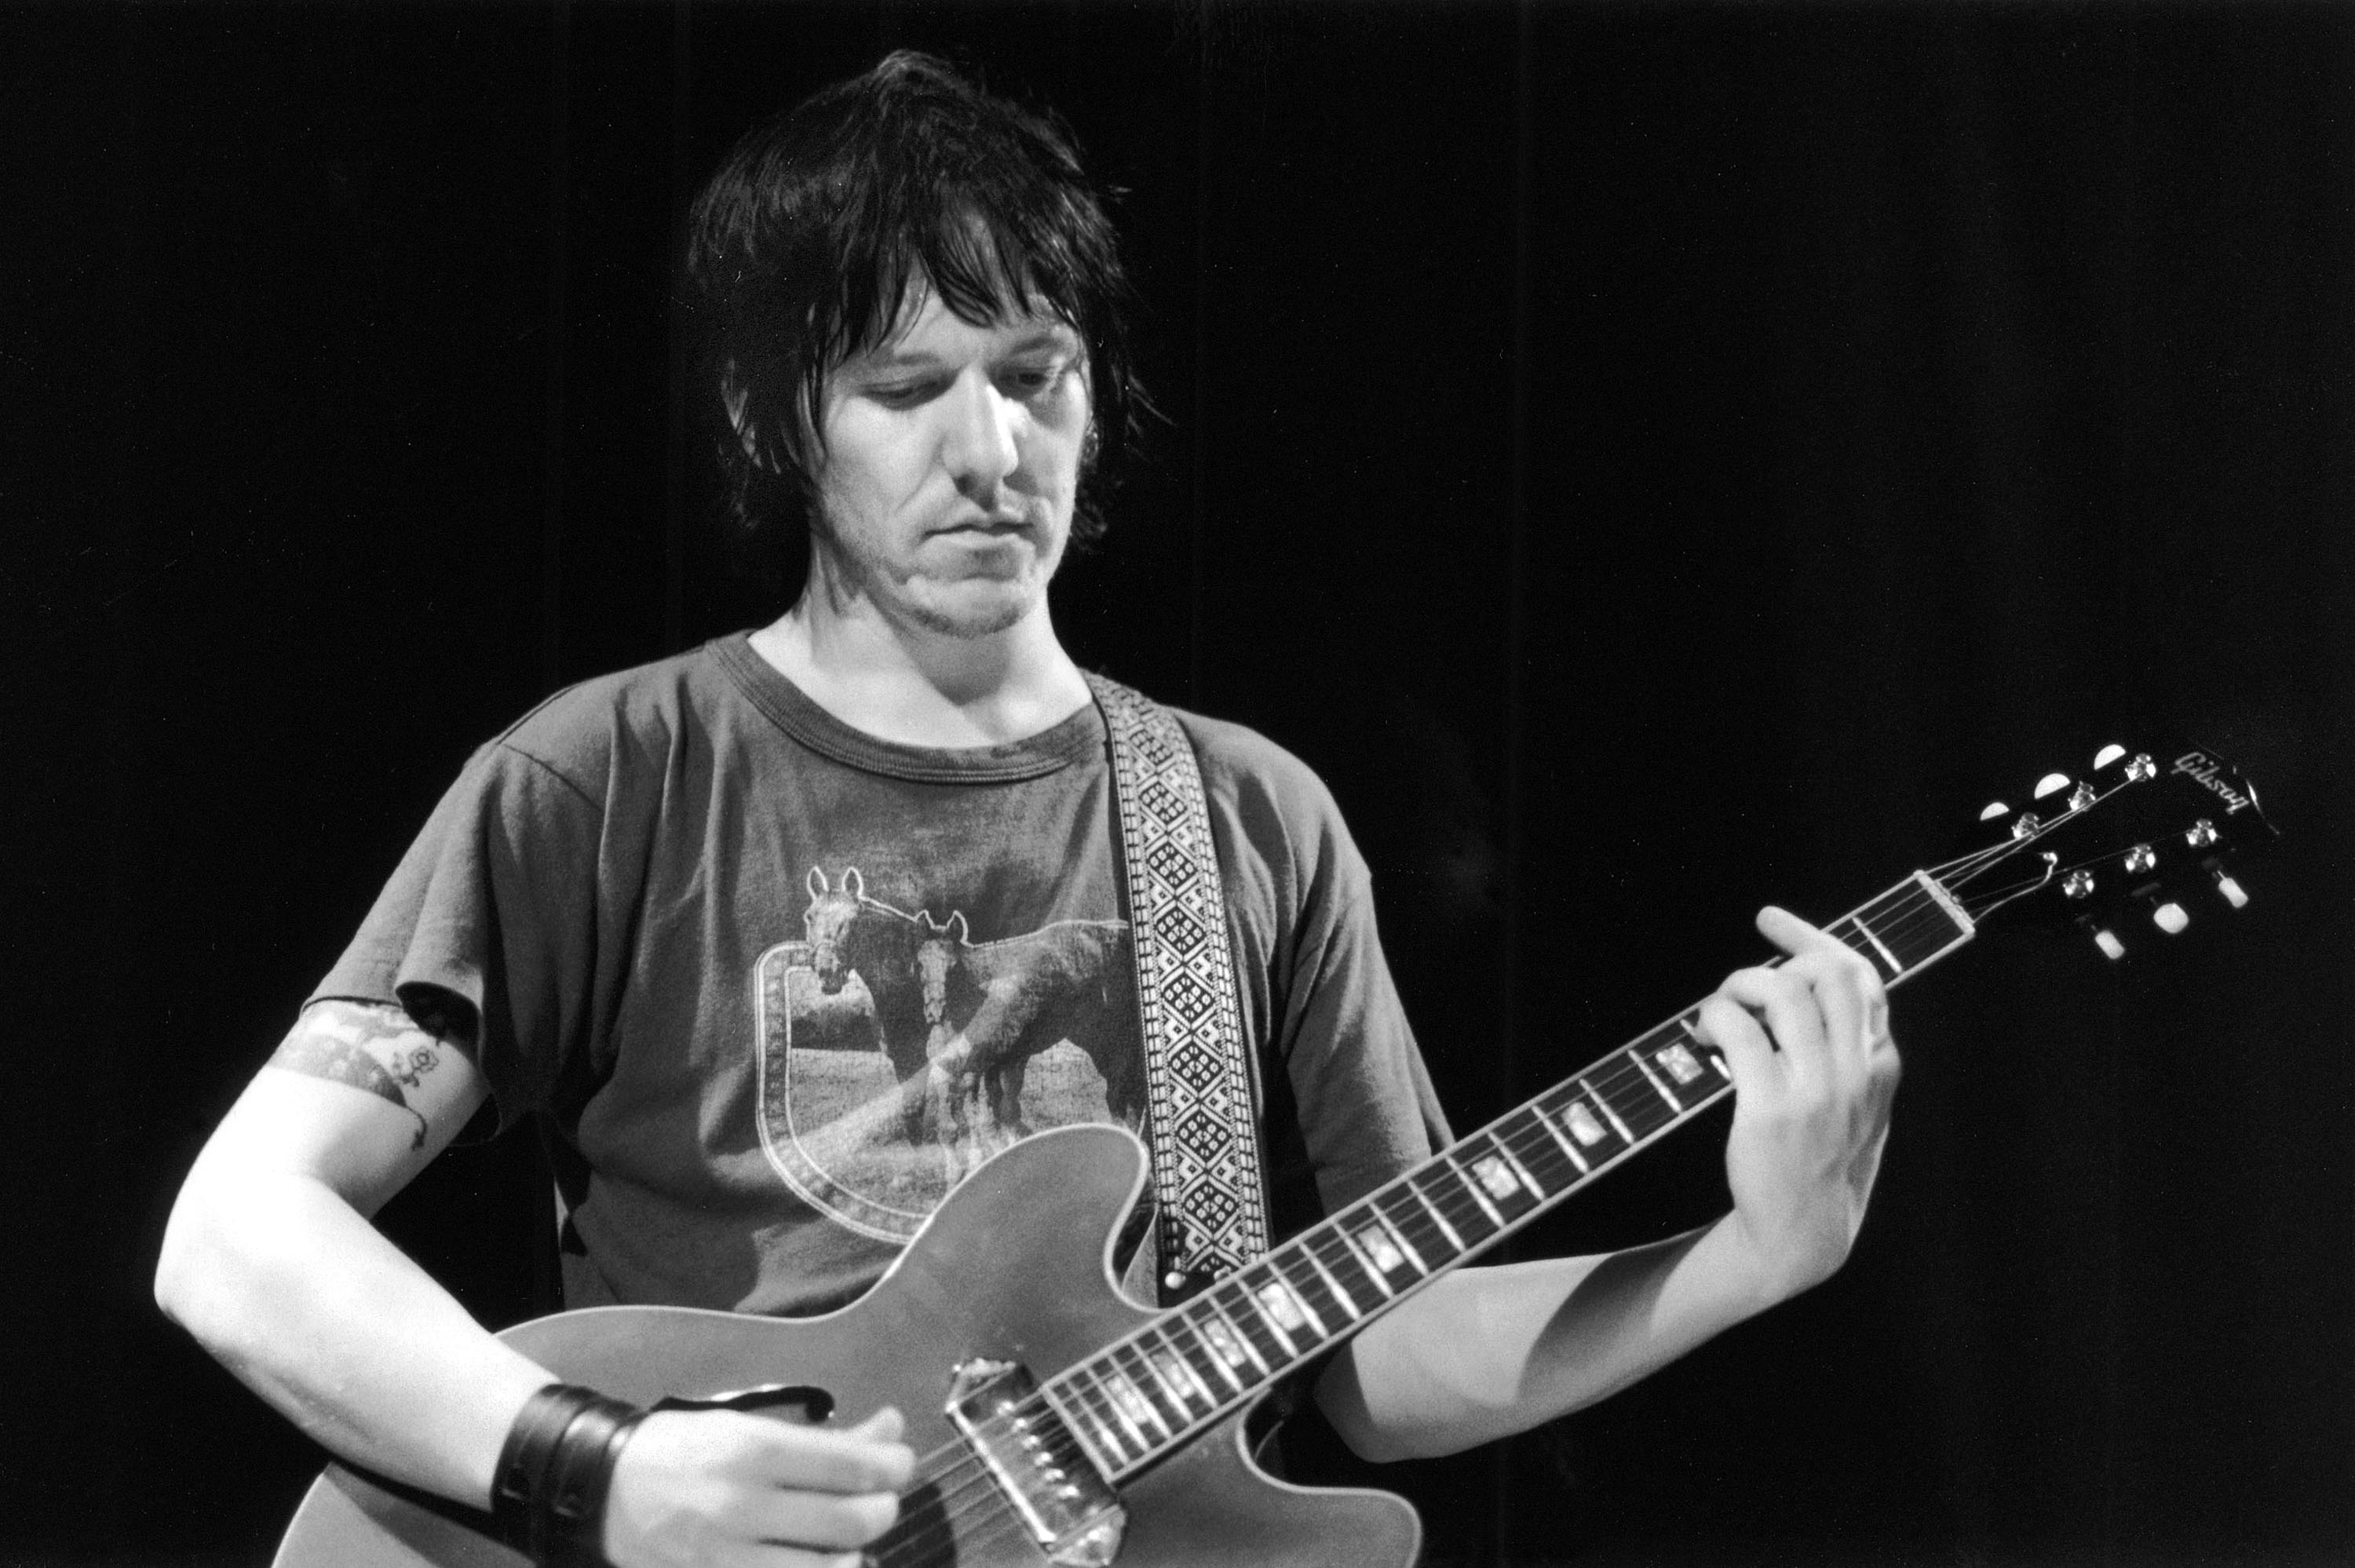 Musicians Pay Tribute To Elliott Smith, Who Died 10 Years Ago Today